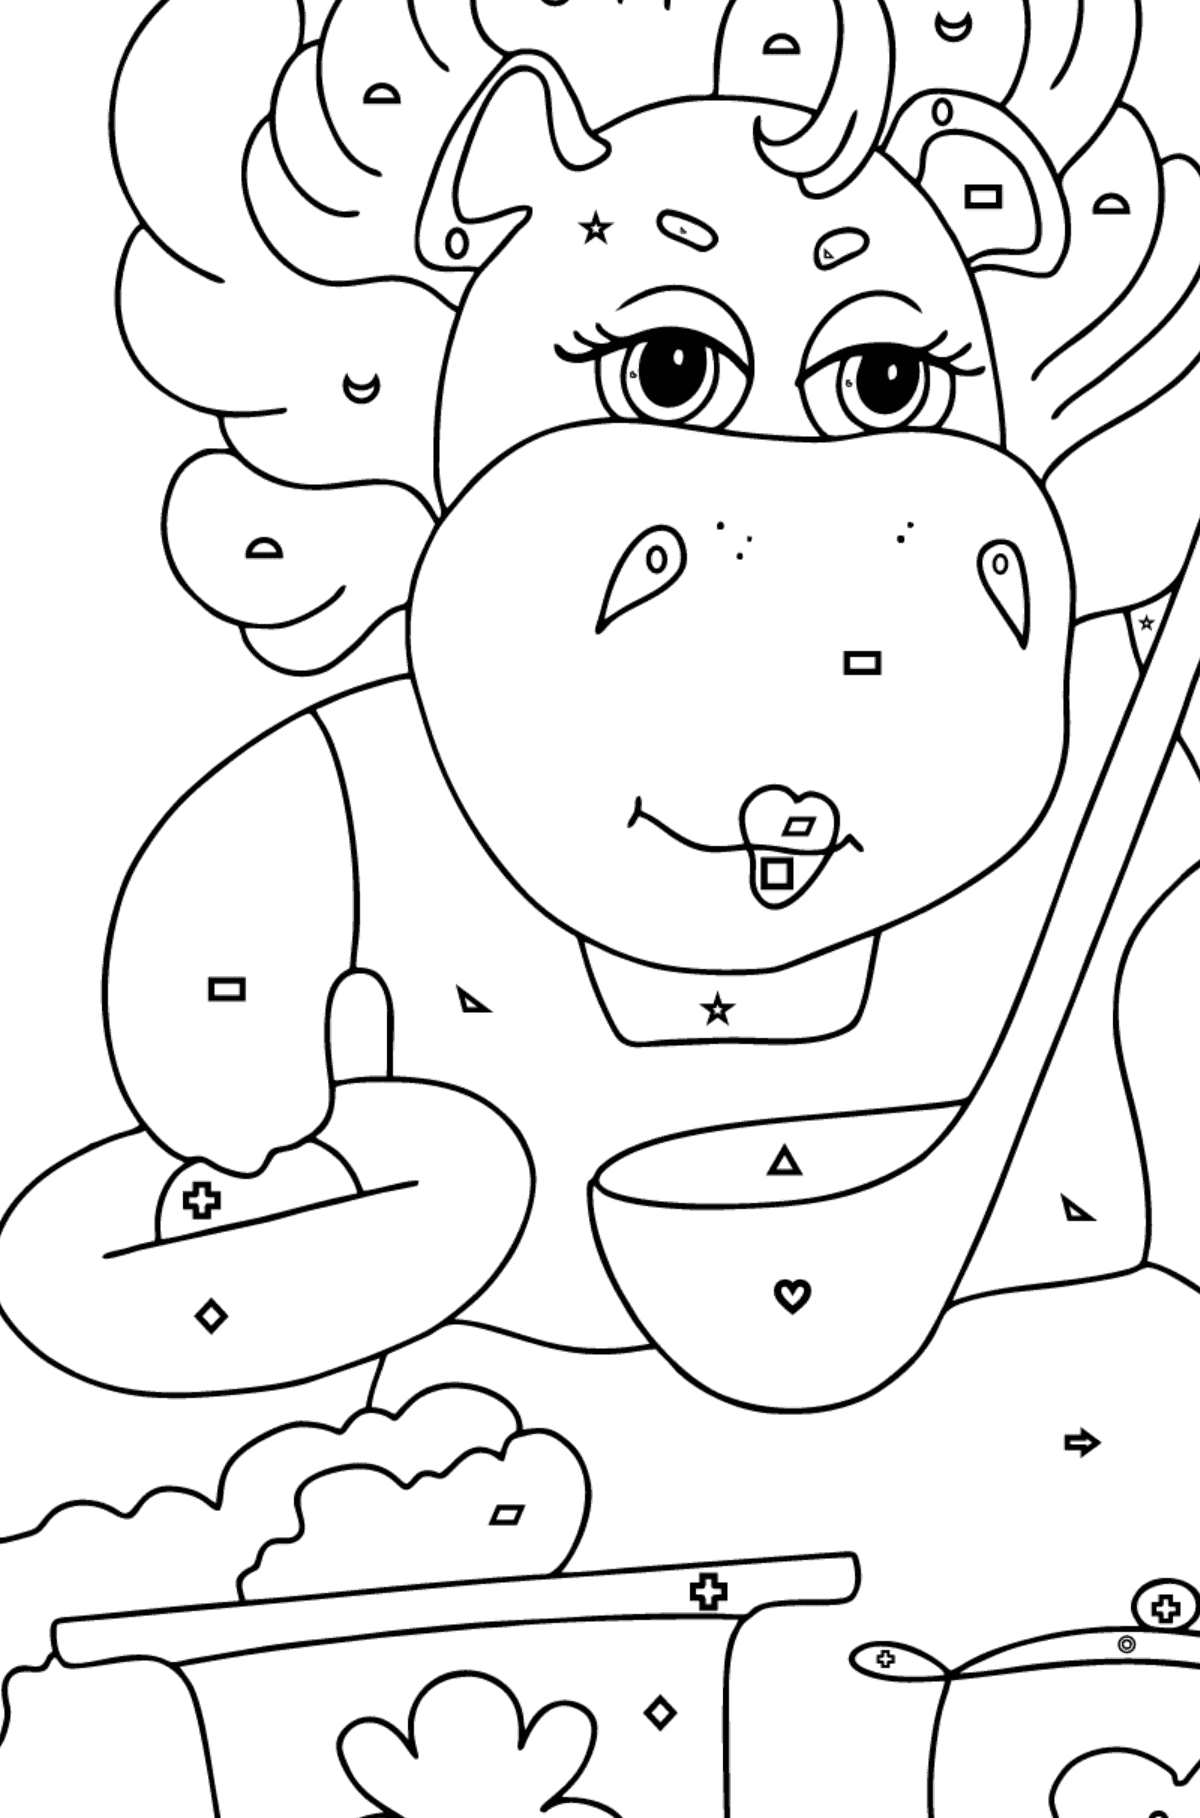 Coloring Page - A Hippo is Cooking a Tasty Lunch for Kids  - Color by Geometric Shapes